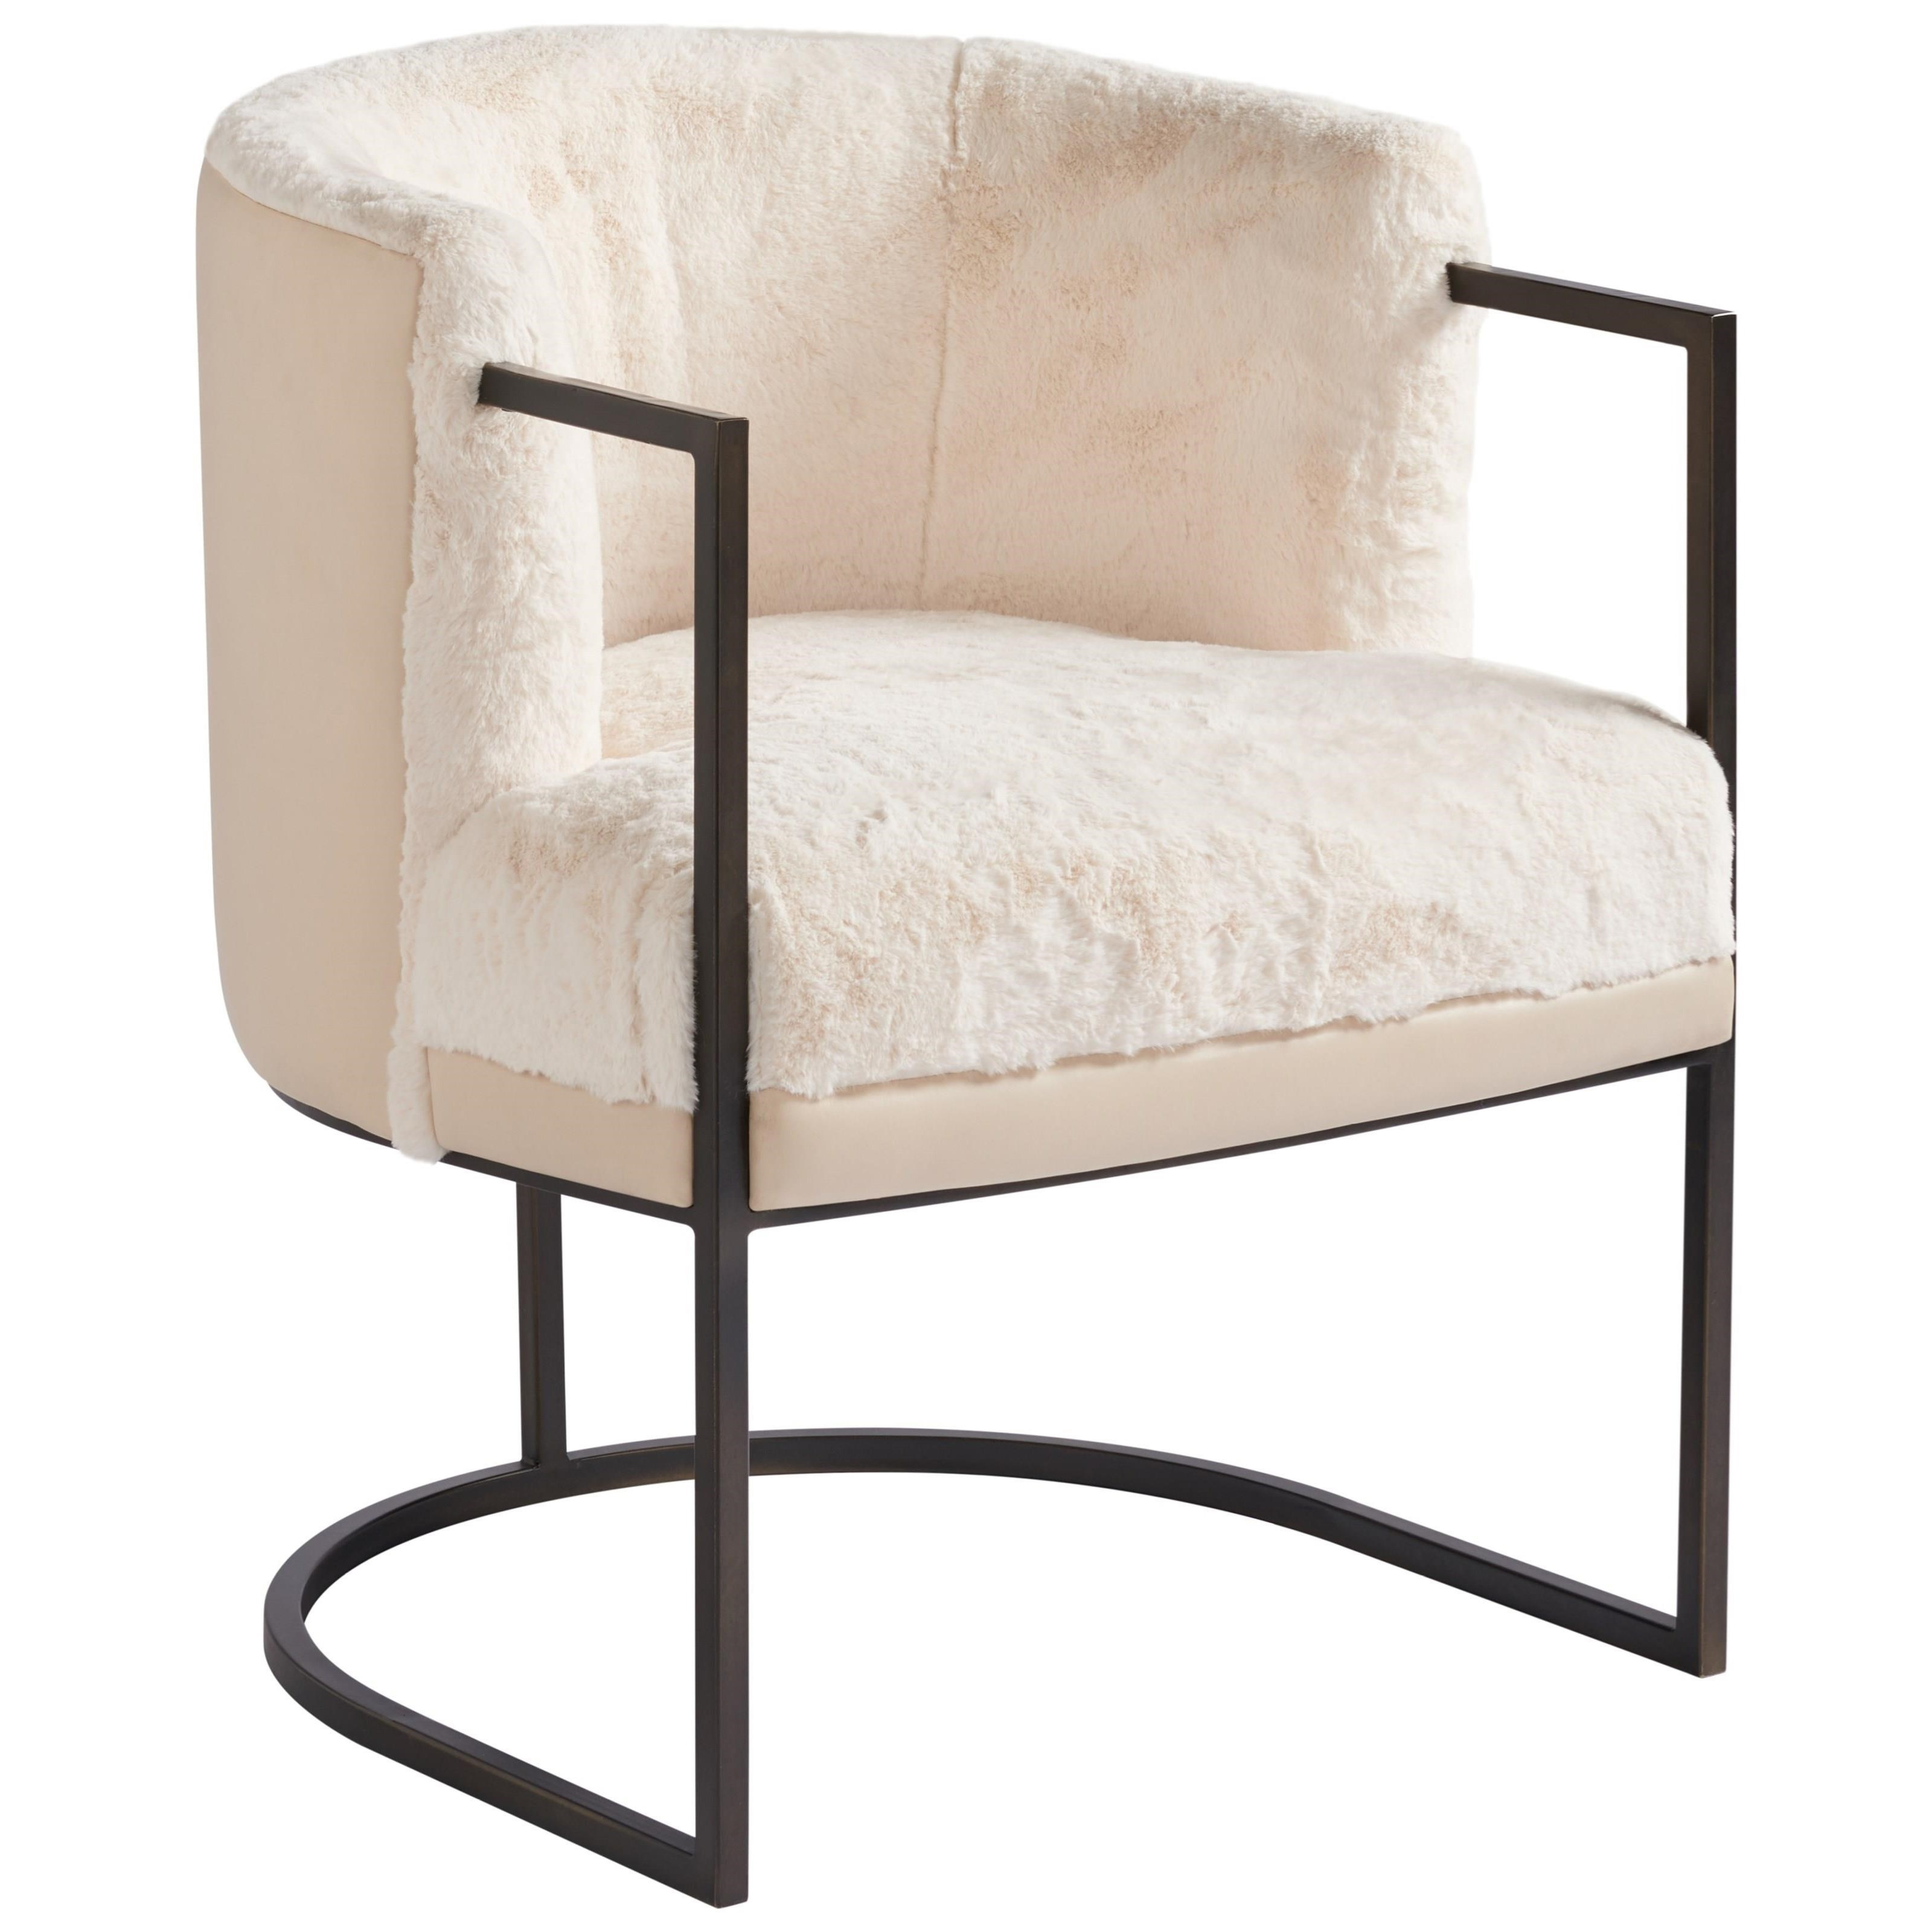 Accent Chairs Alpine Valley Accent Chair by Universal at Baer's Furniture